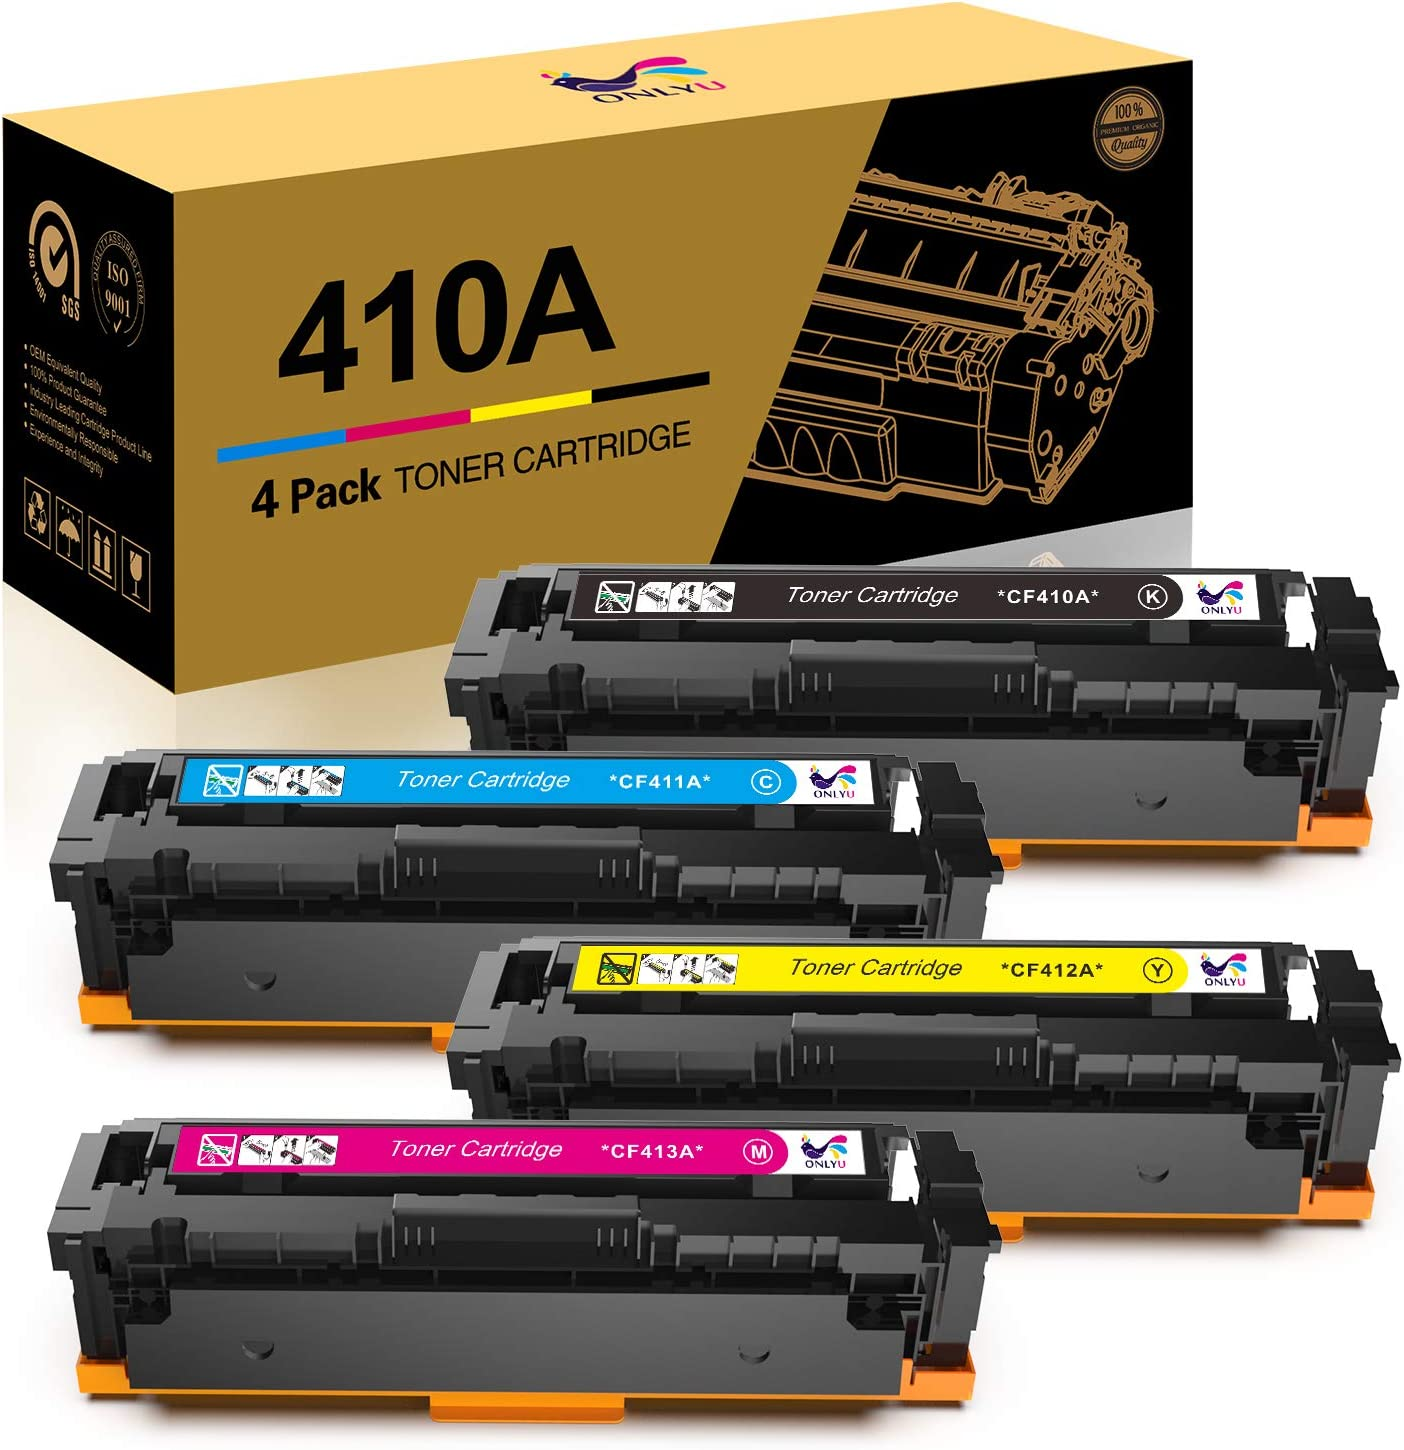 ONLYU Compatible Toner Cartridge Replacement for HP Toner 410A CF410A CF411A CF412A CF413A for HP Laserjet Pro MFP M477fnw M477fdn M452dw M452dn M452nw Printer(Black Cyan Yellow Magenta, 4-Pack)